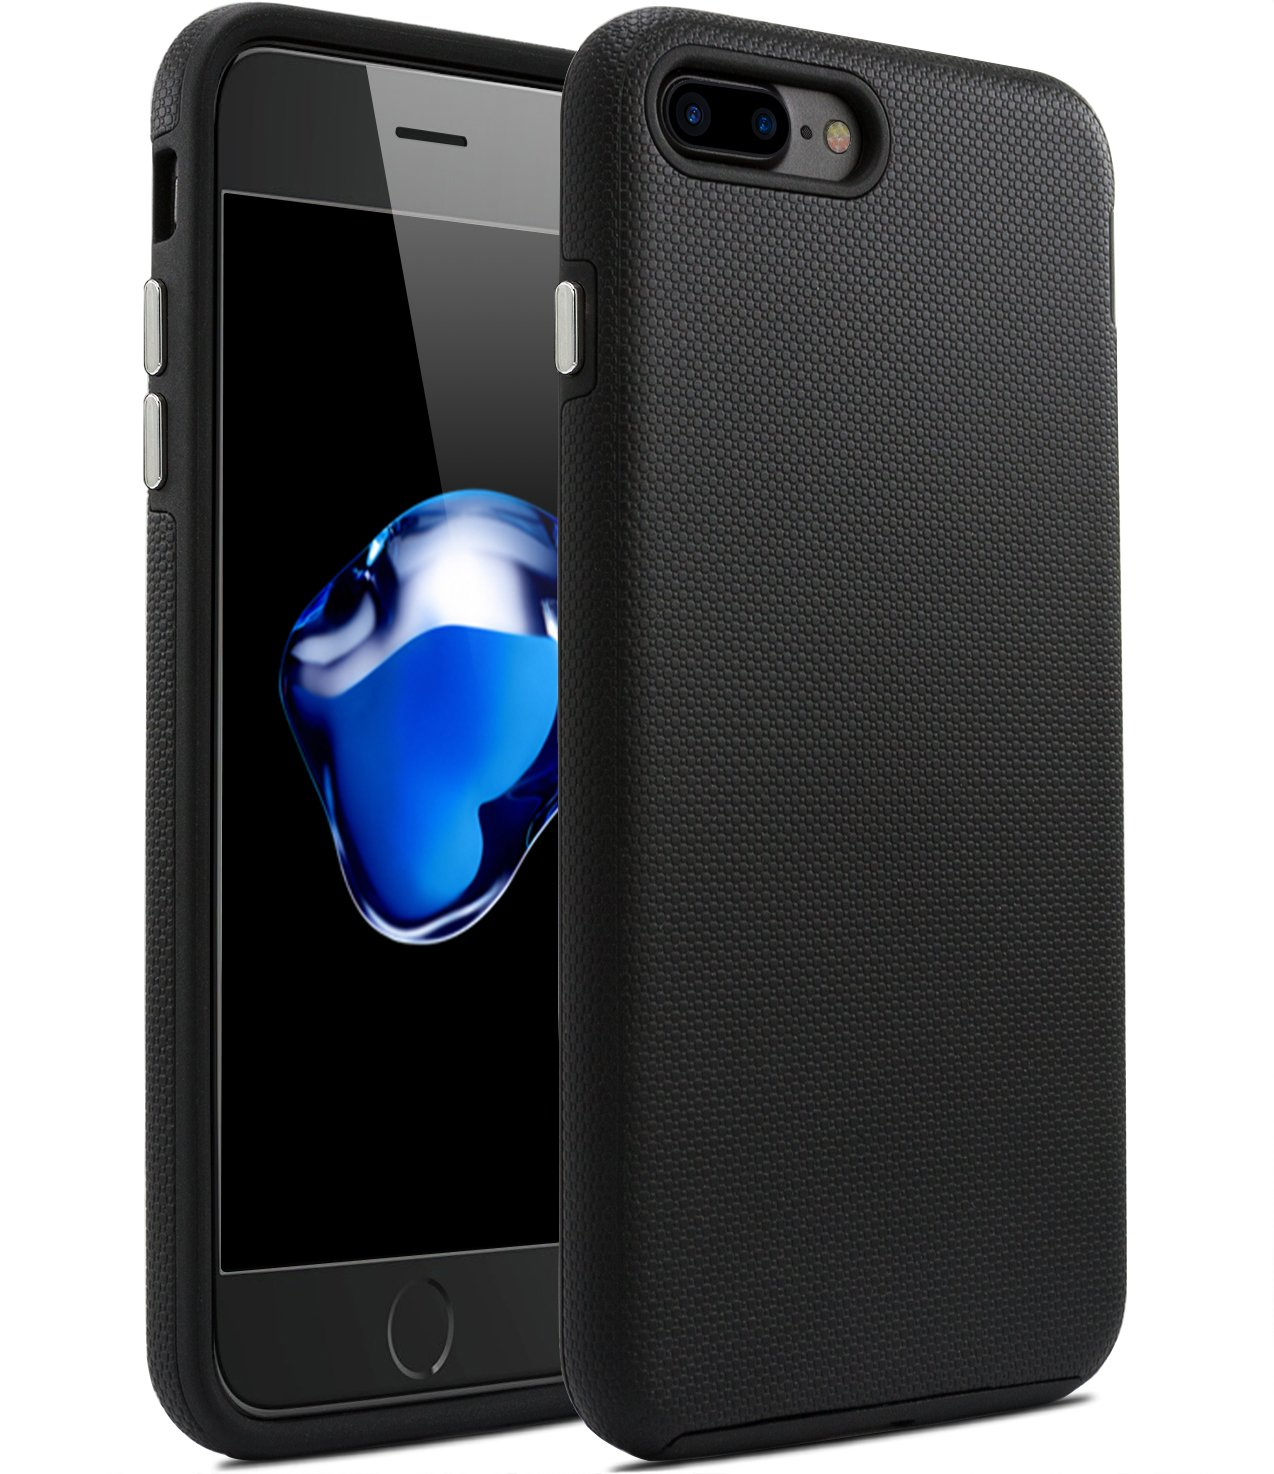 iPhone 8 Plus Case,iPhone 7 Plus Case,Fragrancy Dual Layer Super Sturdy [Shock Proof] with Dustproof Soft Touch Texture [Anti-Slip] Protect Case for iPhone 7 Plus 5.5 inch - matte jet Black